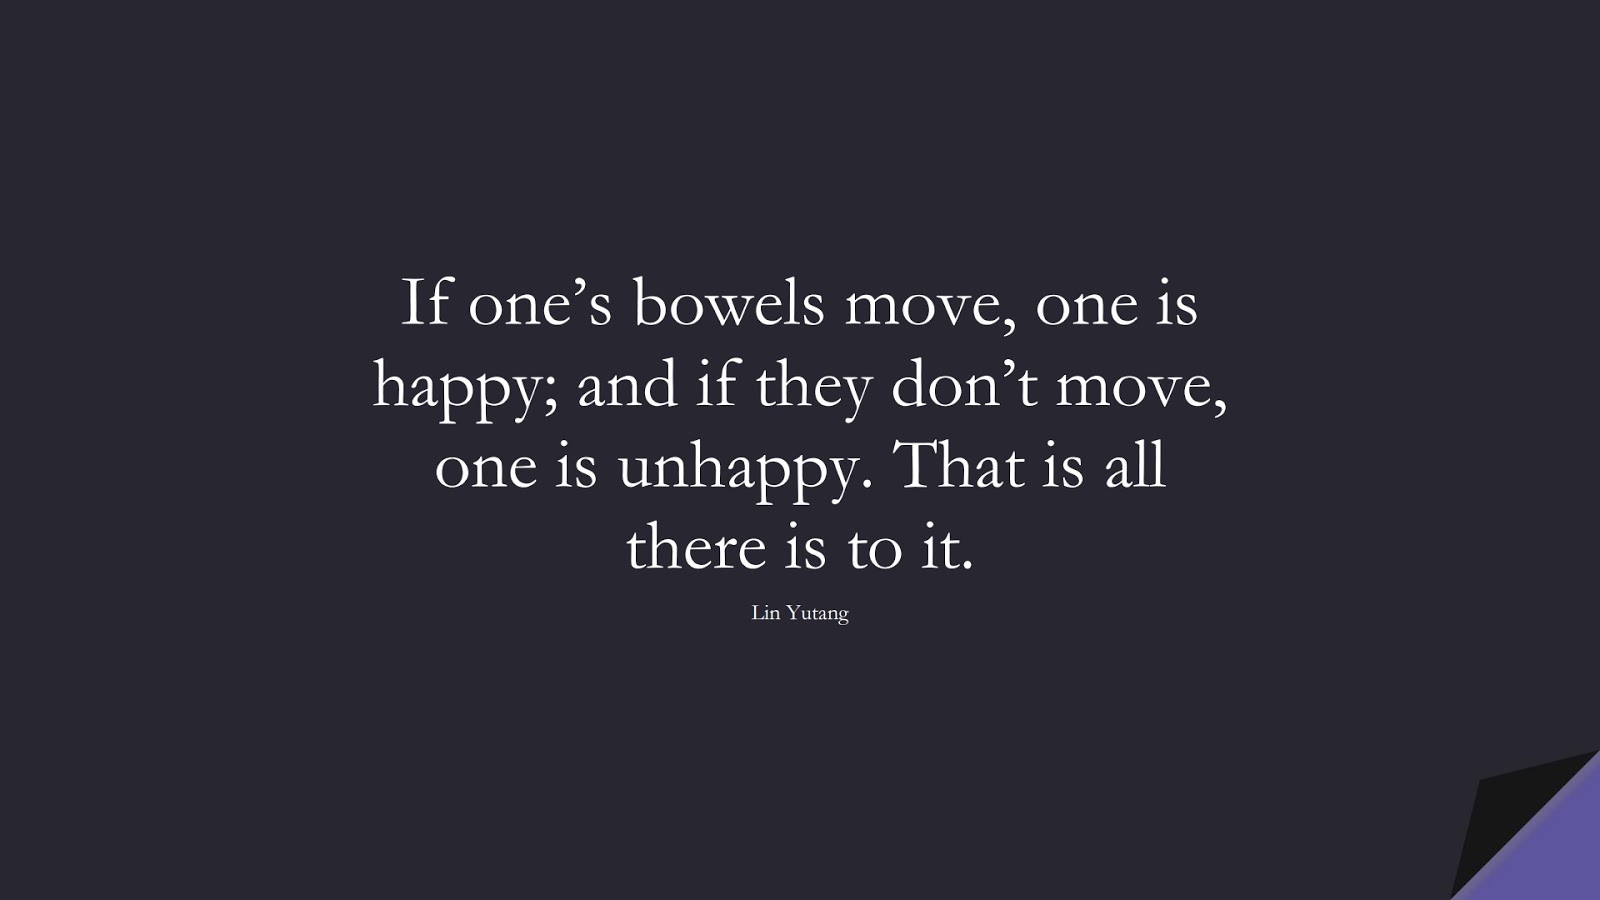 If one's bowels move, one is happy; and if they don't move, one is unhappy. That is all there is to it. (Lin Yutang);  #HealthQuotes